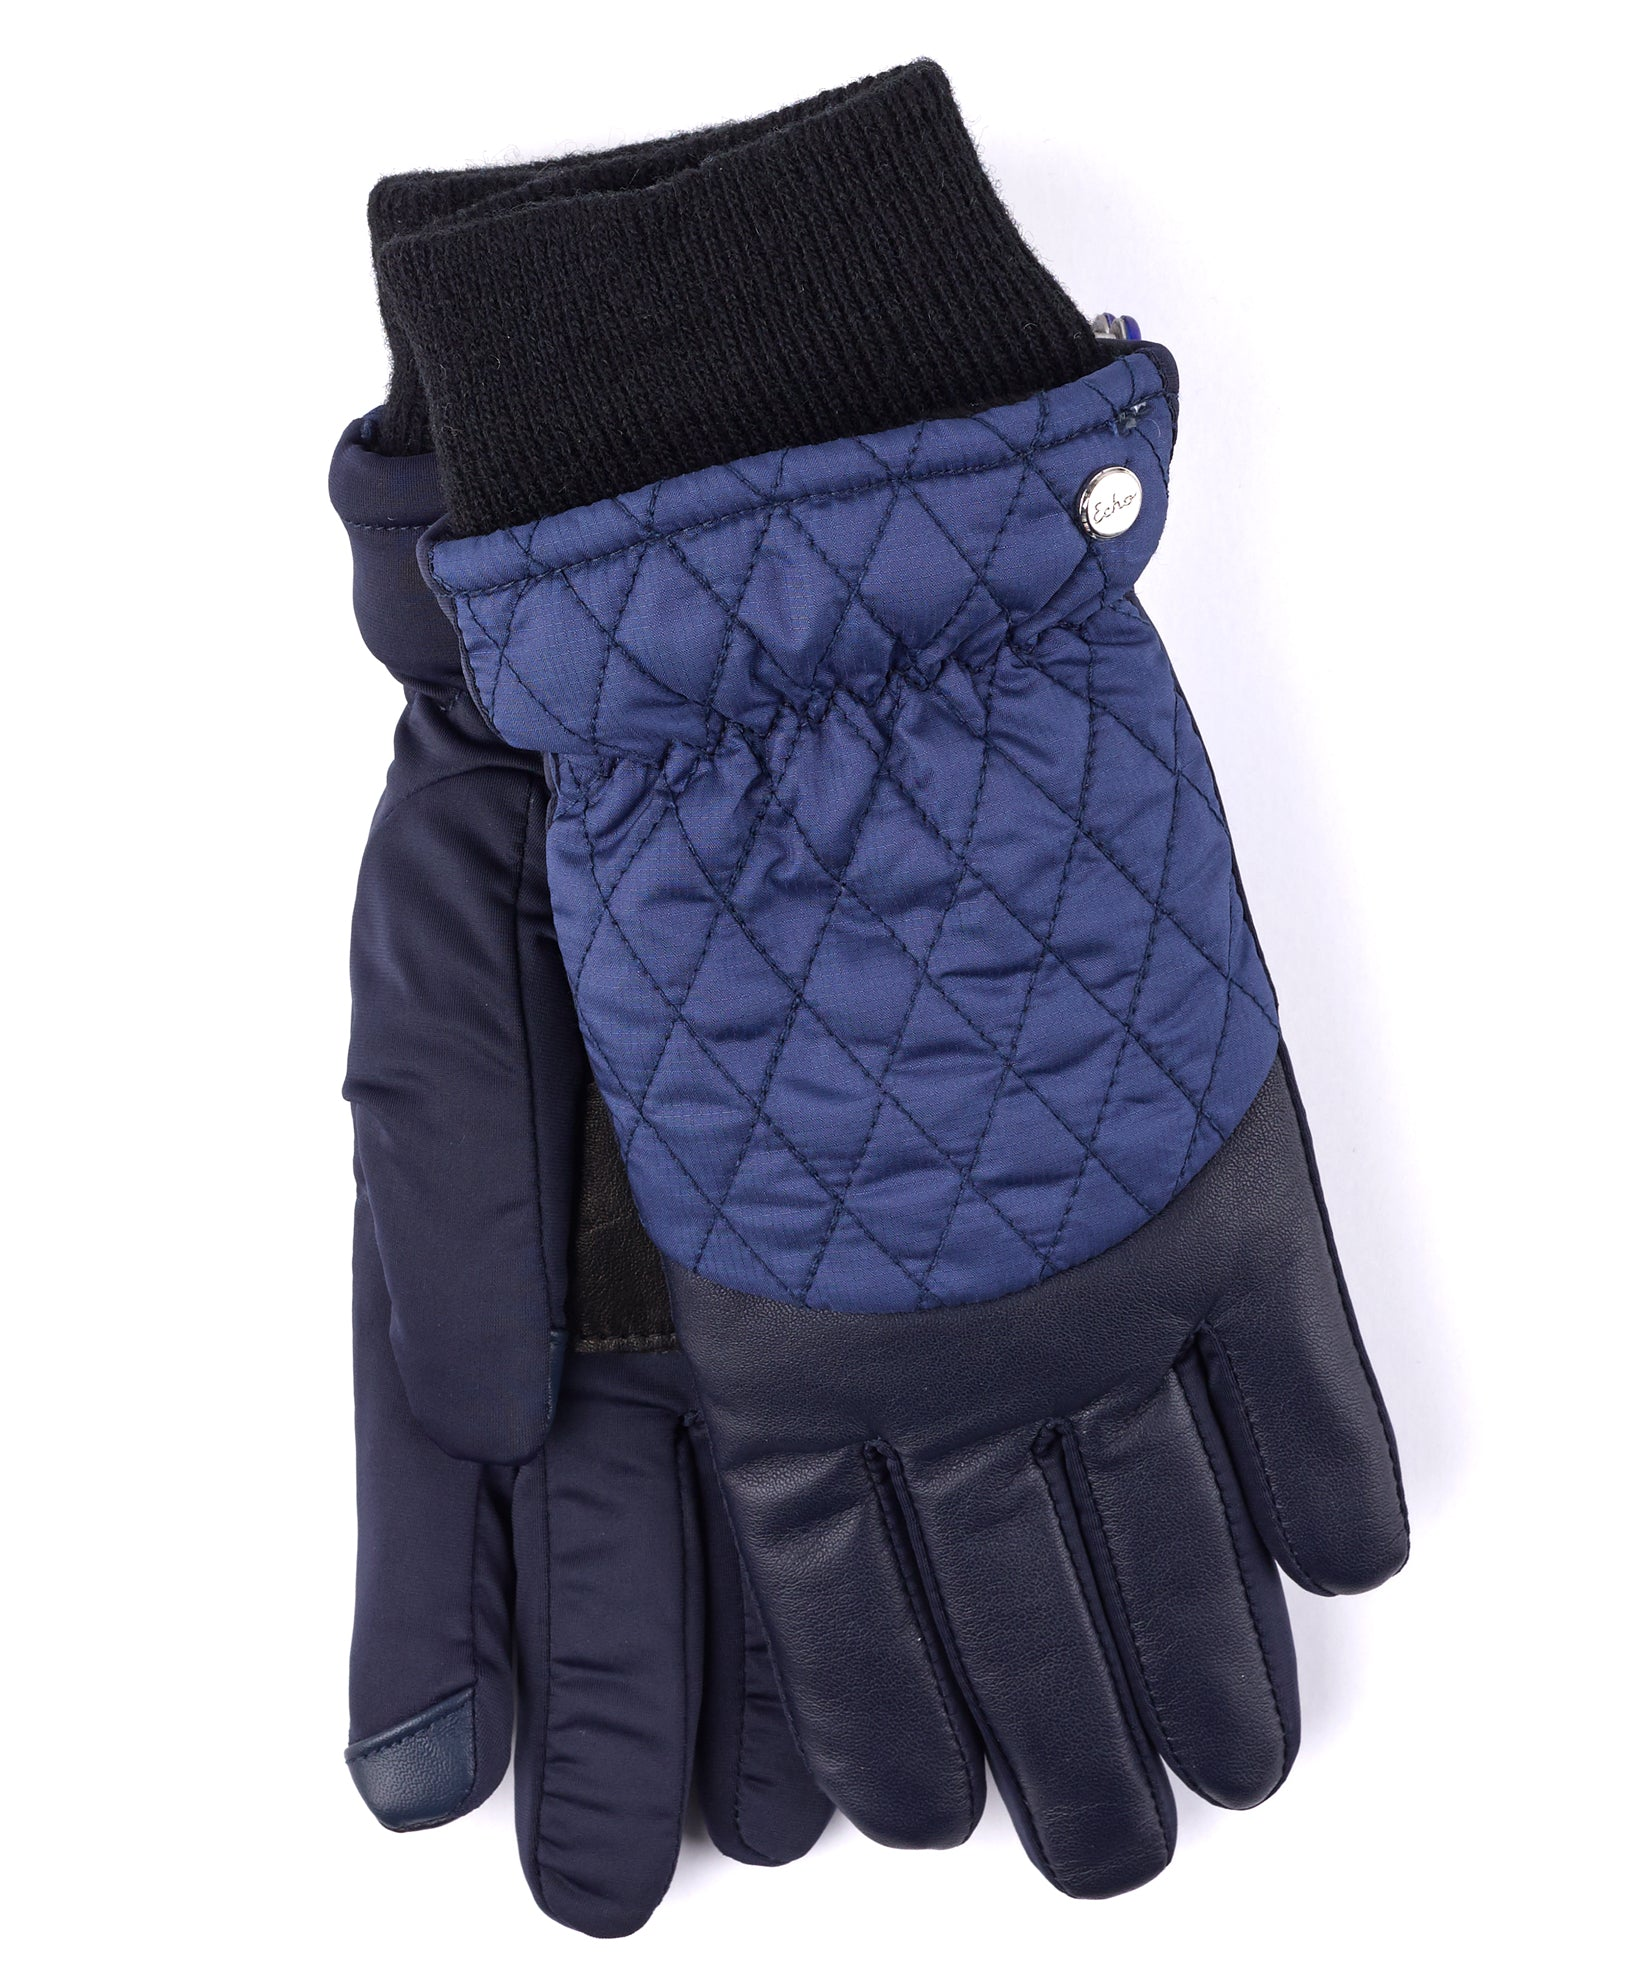 Echo Navy - Warmest Glove